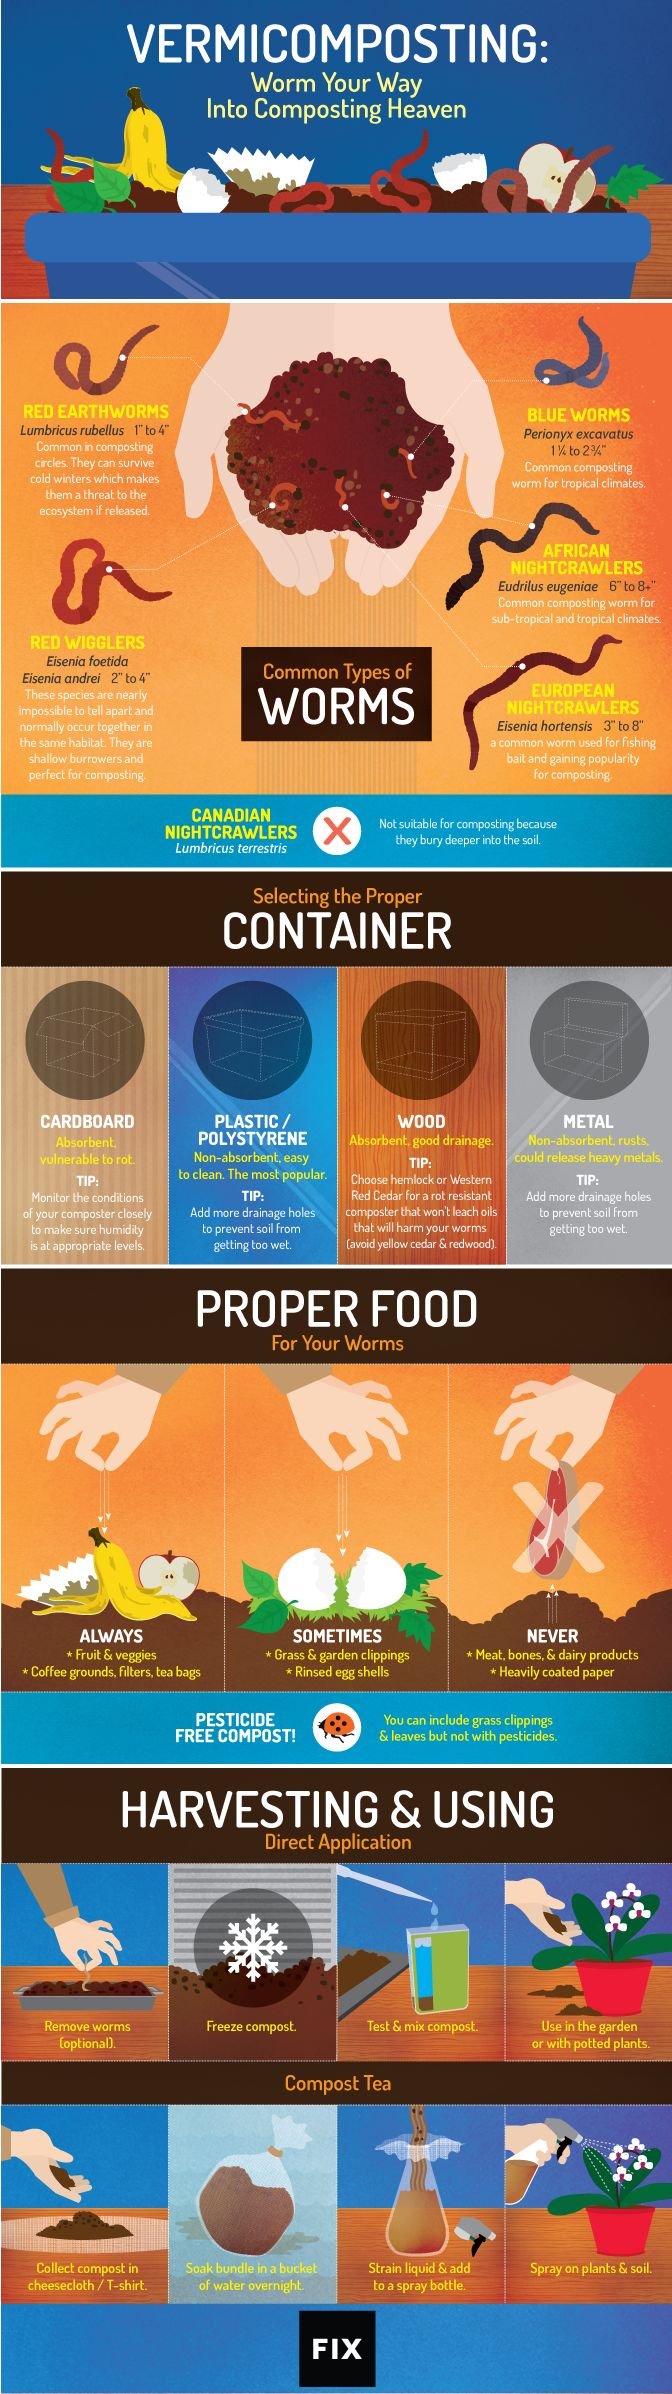 Vermicomposting: Worm Your Way into Composting Heaven #infographic #Composting #Gardening